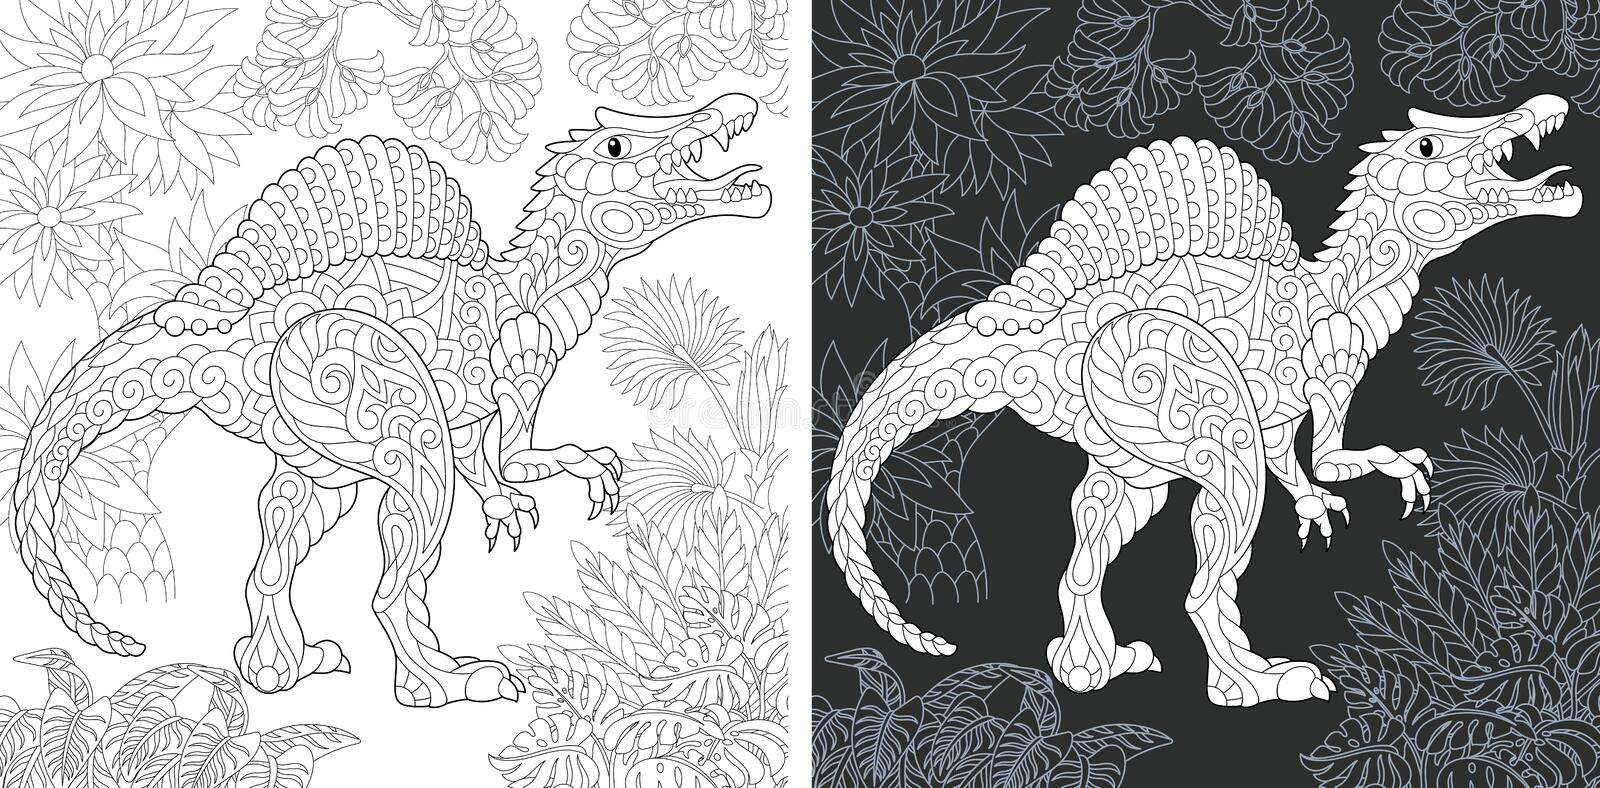 Coloring pages with Spinosaurus stock photography